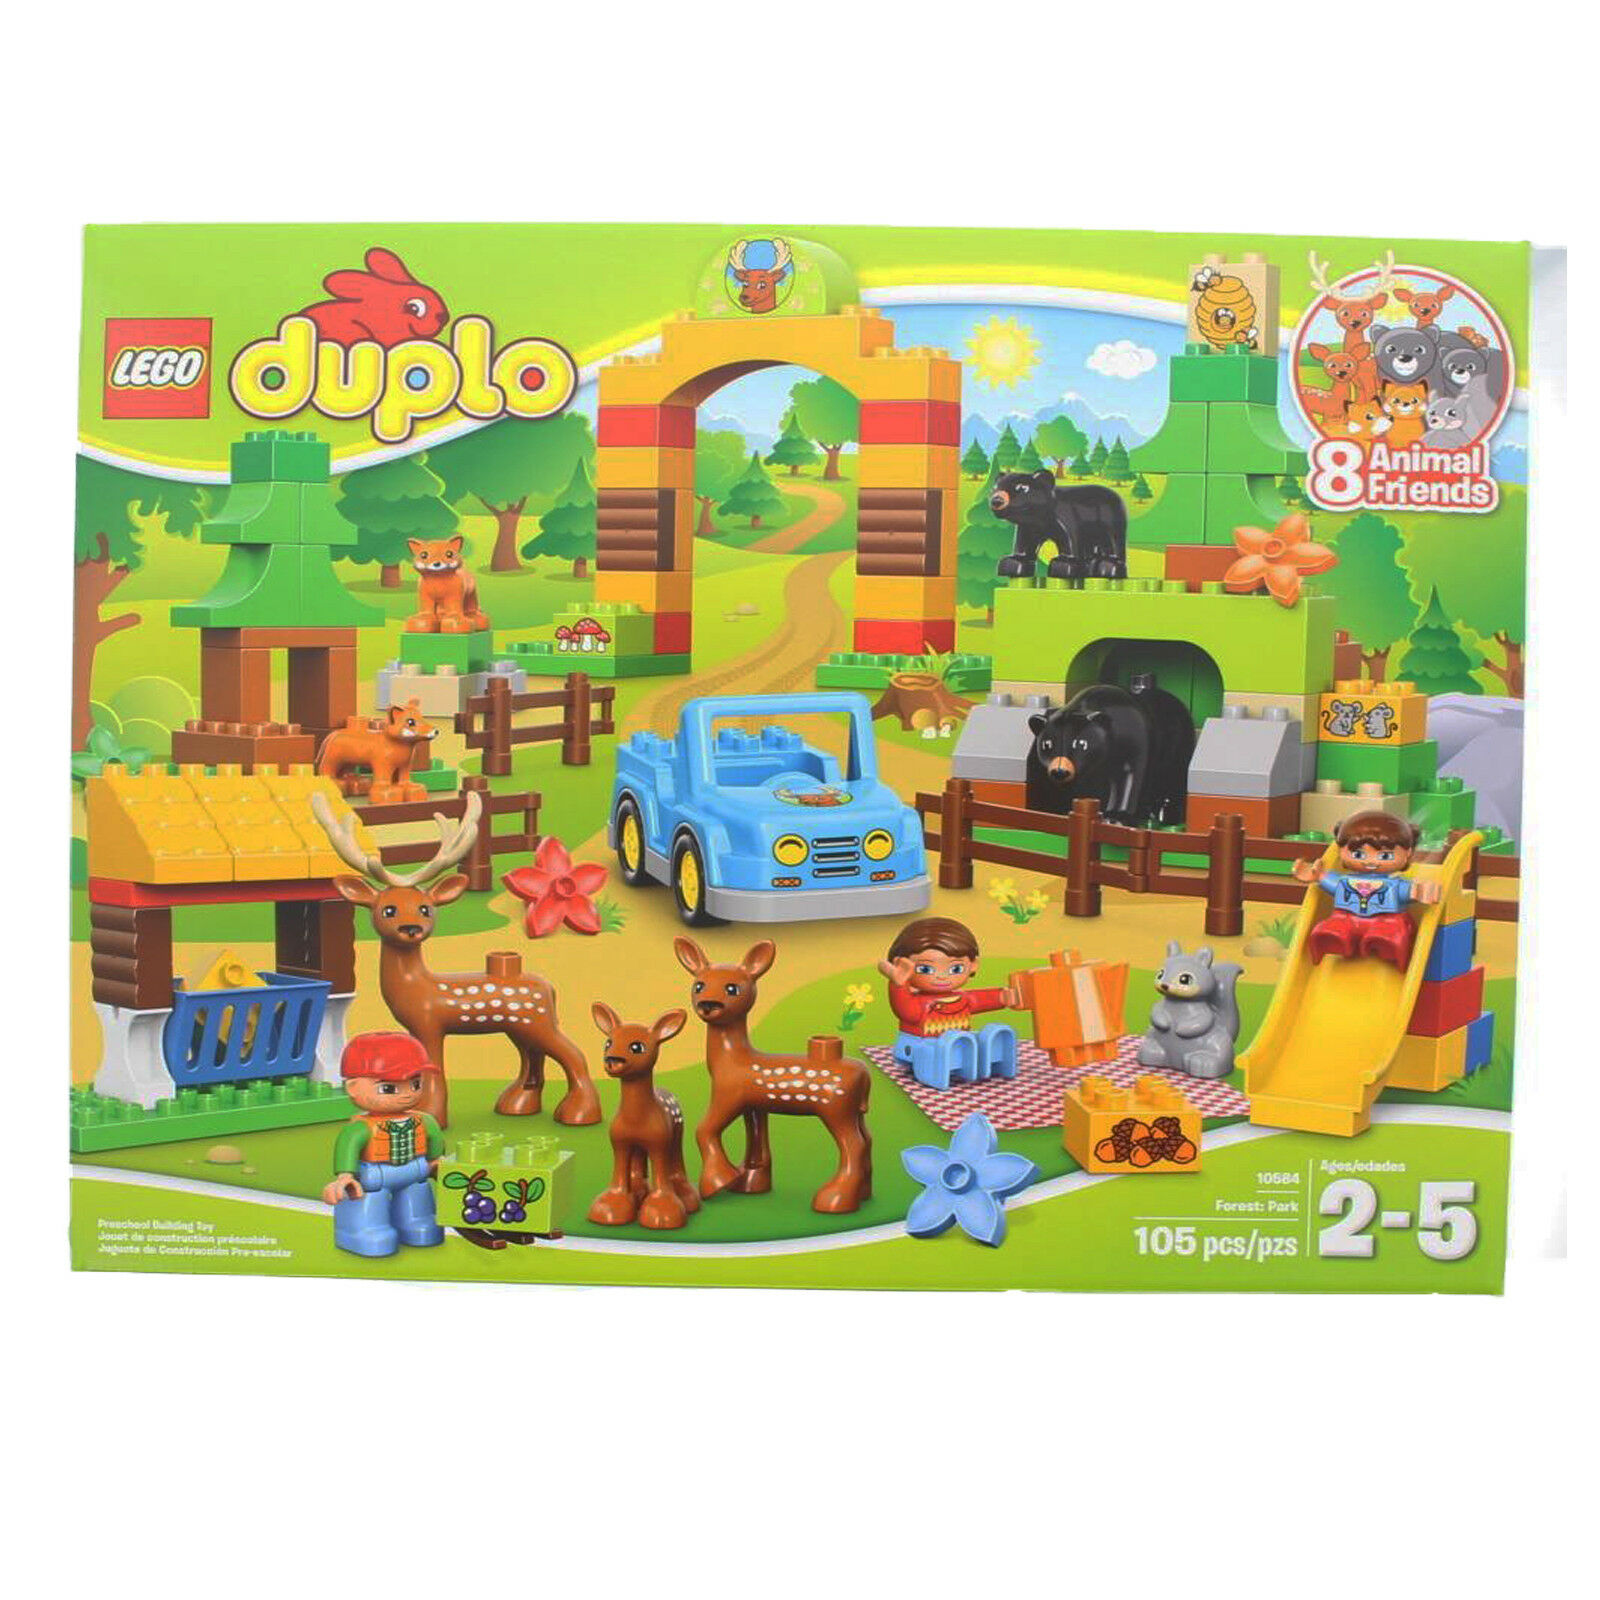 LEGO Duplo Town 10584 Park Forest Play Building Set